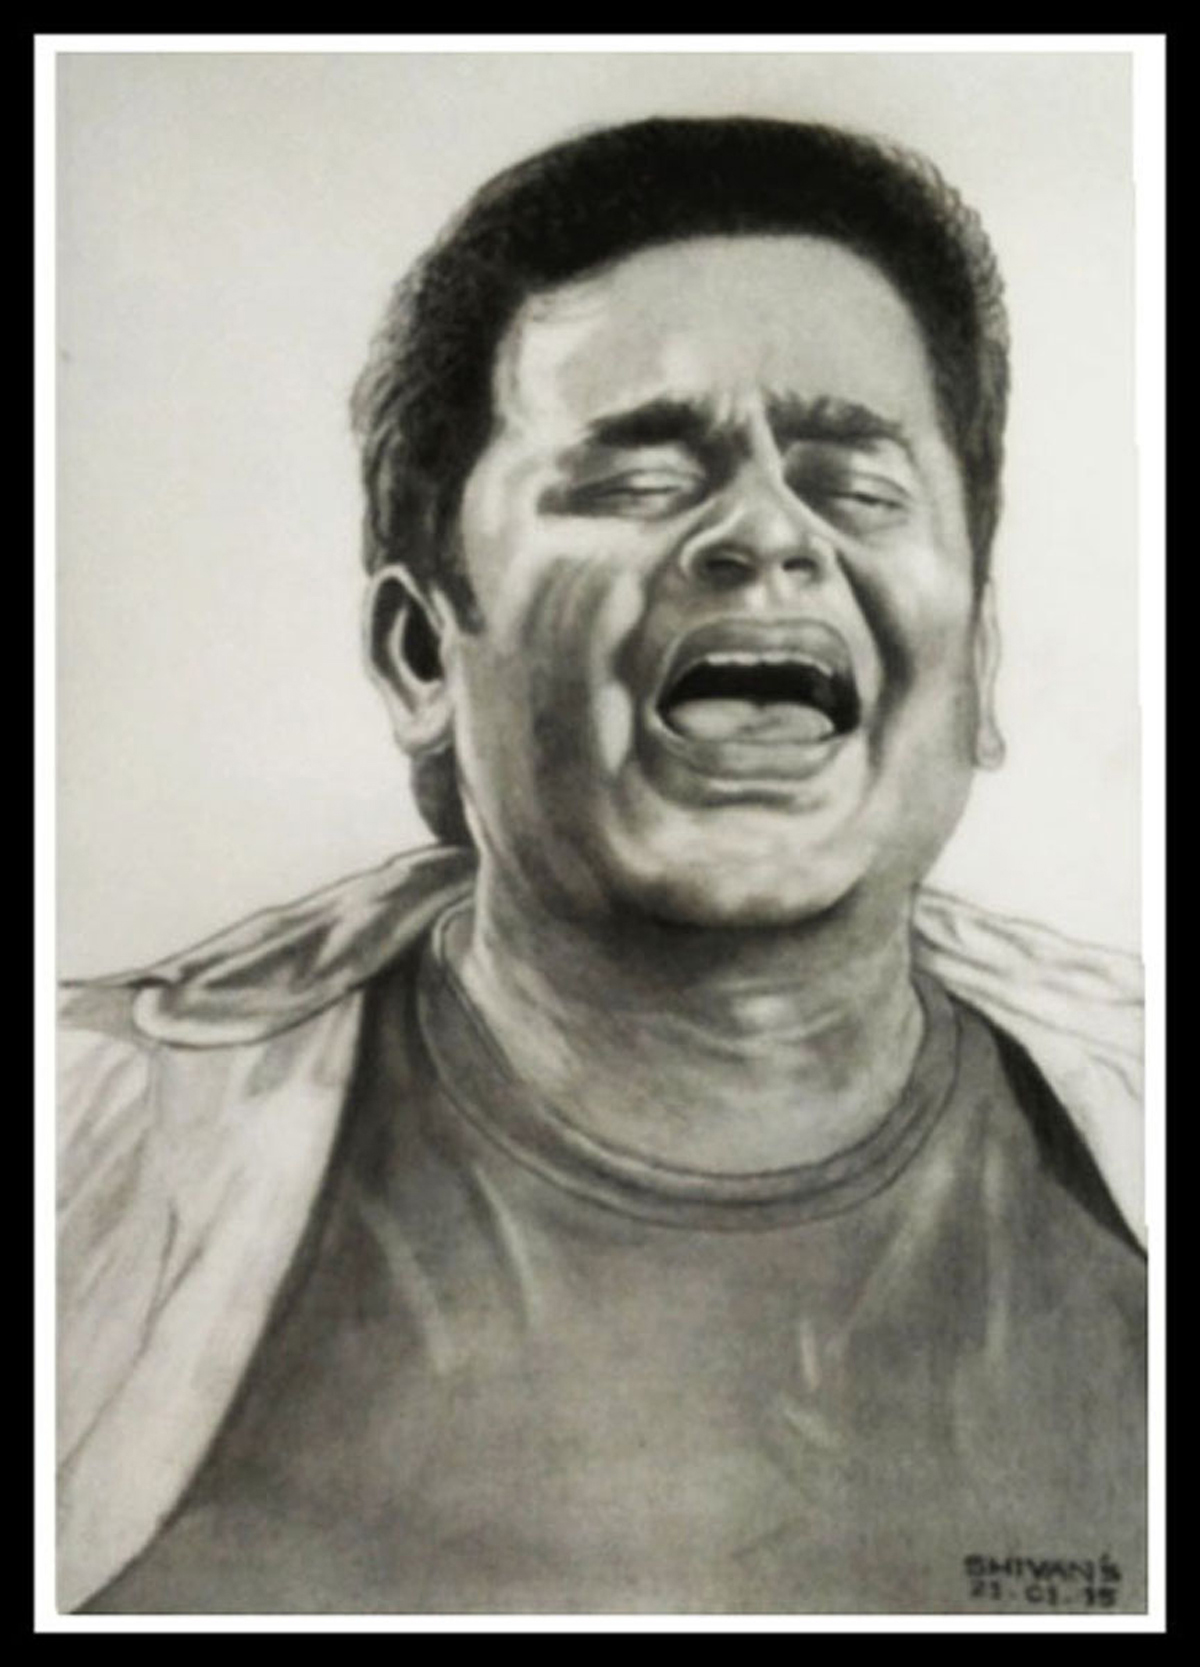 INDIAN MUSIC COMPOSER, SINGER-SONGWRITER, MUSICIAN A.R. RAHMAN  Fine Art